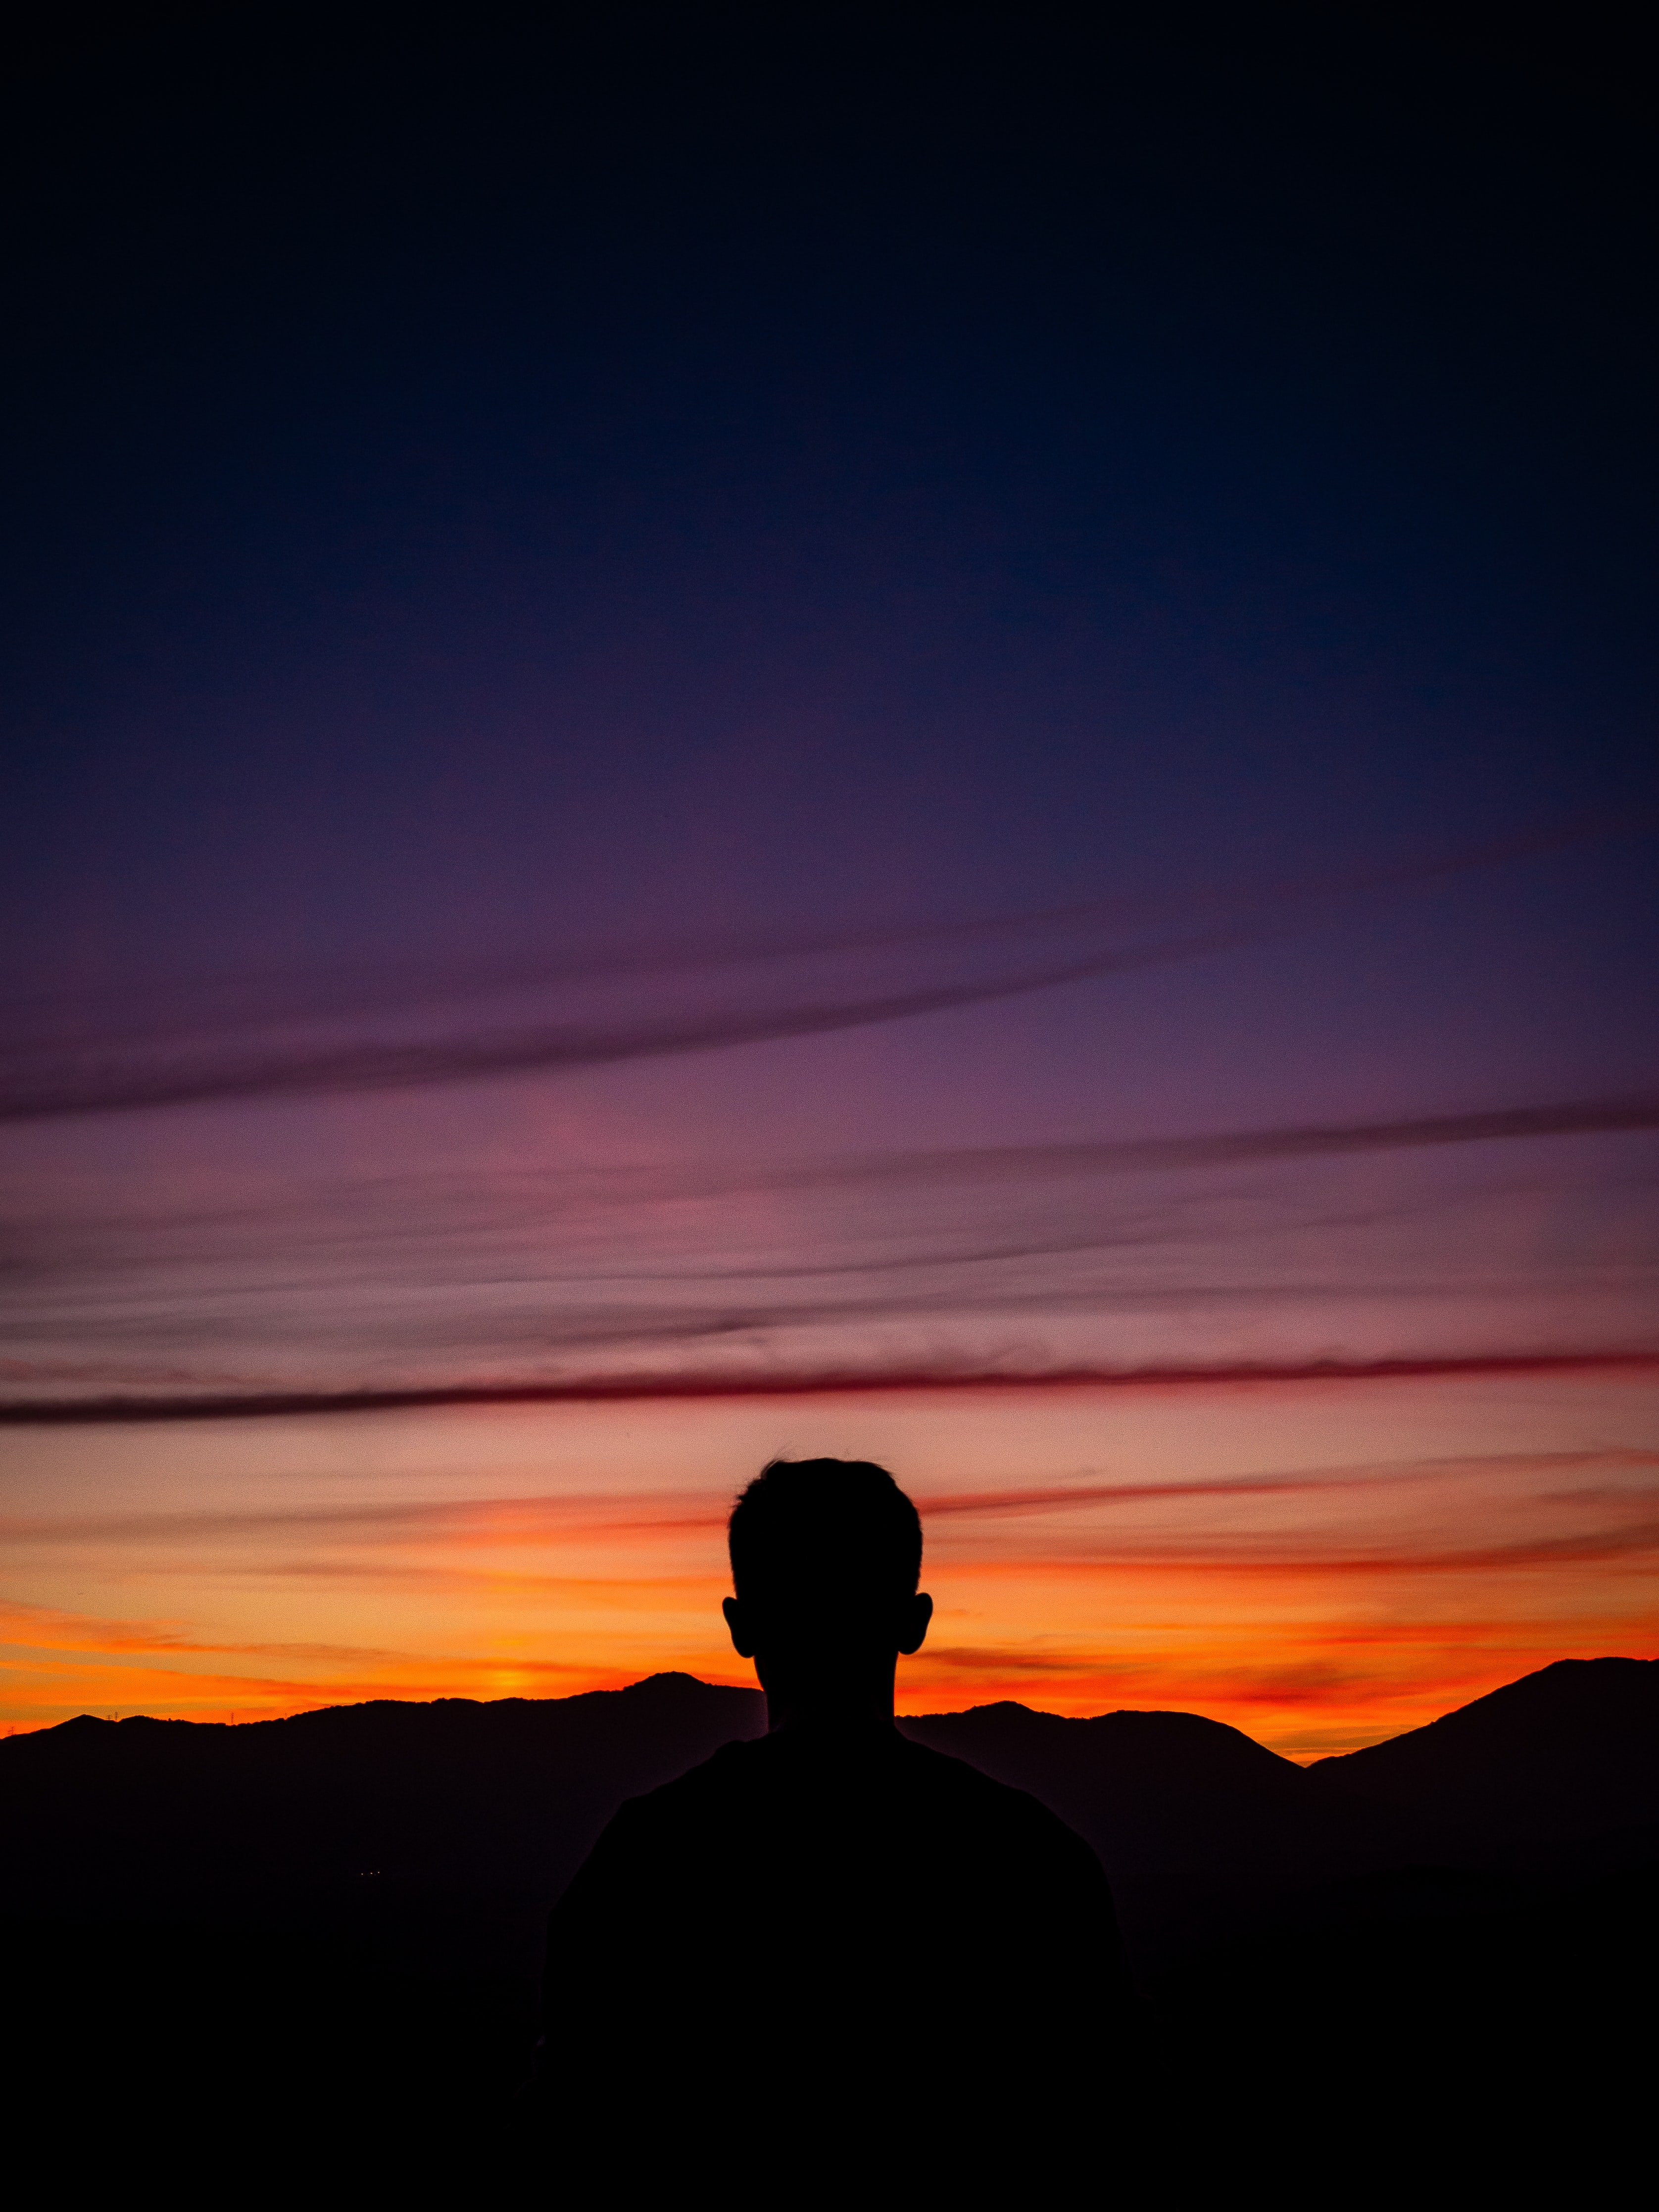 silhouette of man standing with mountain on horizon